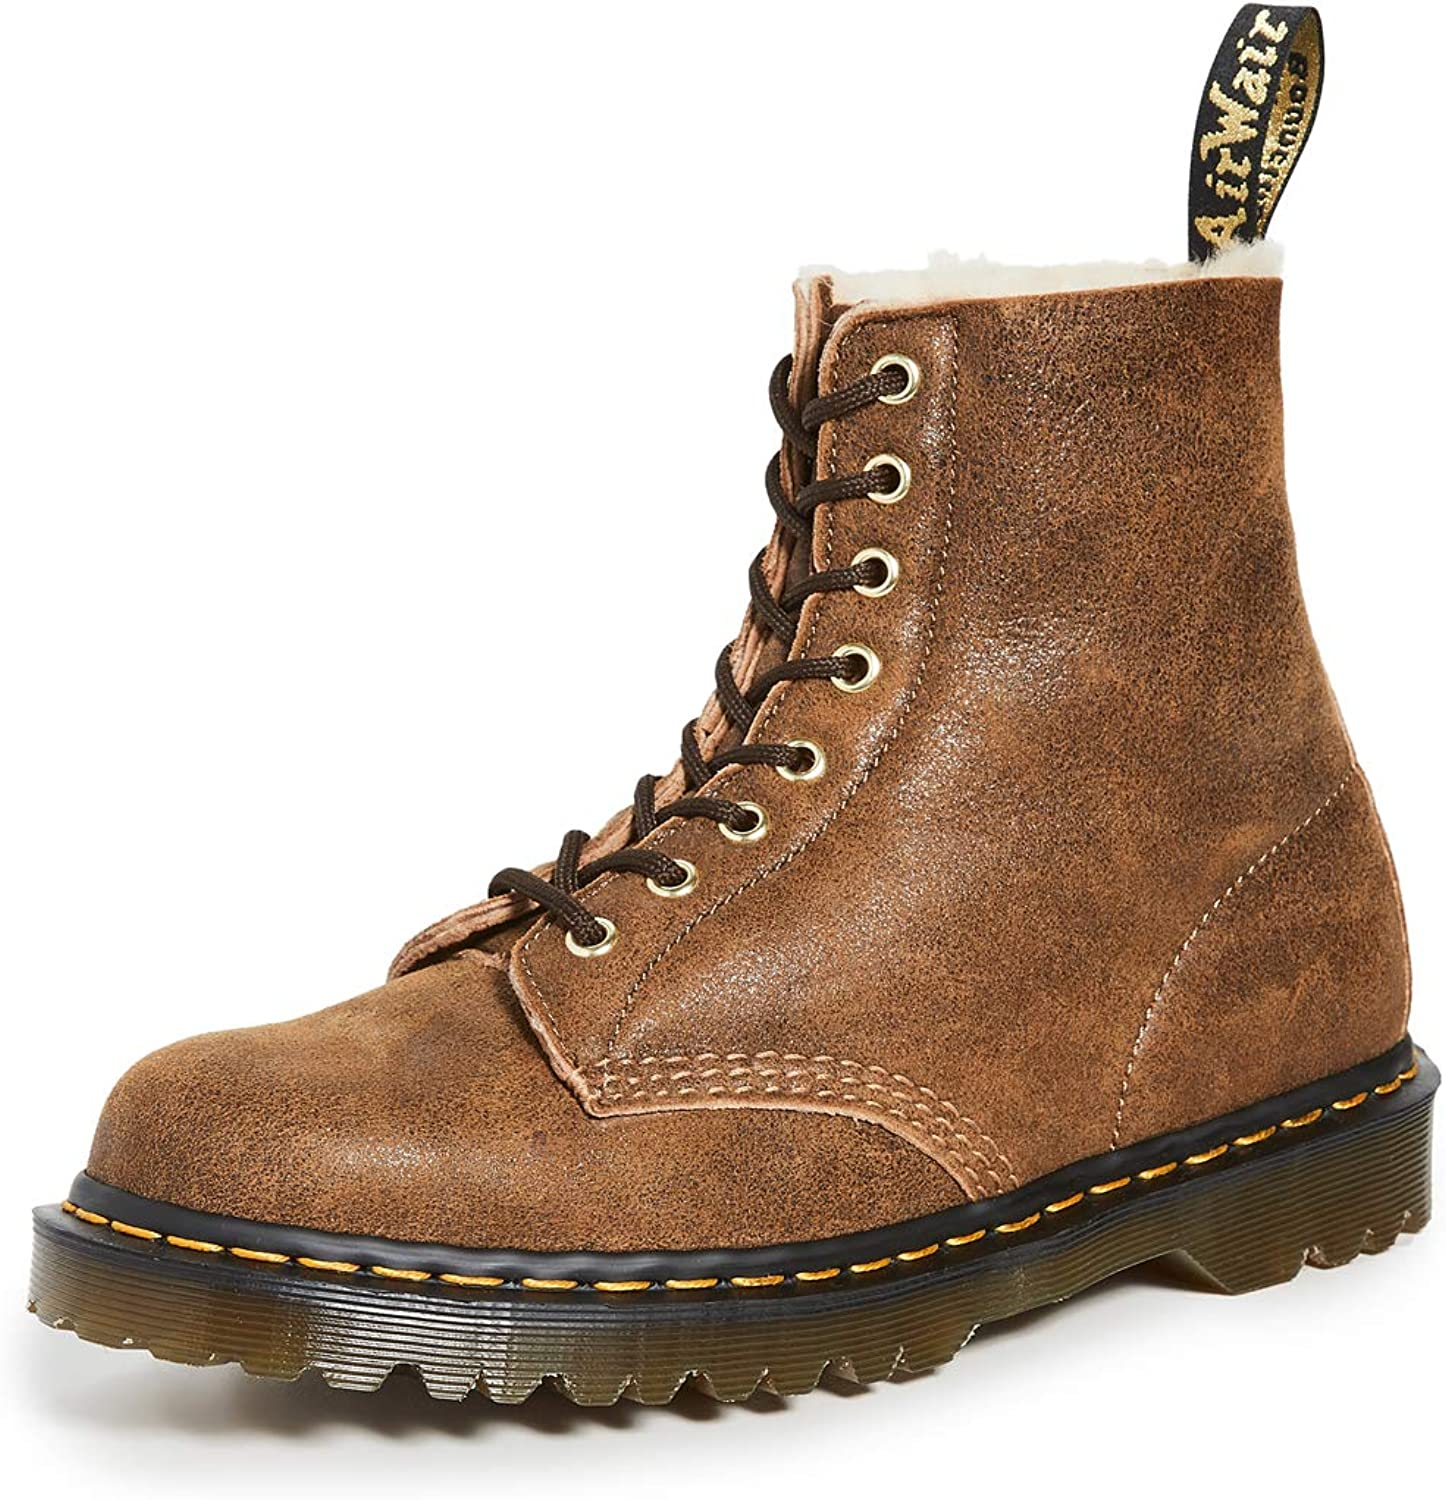 Martens 1460 Pascal 8 Eye Ankle Boots Leather Combat Shoes Dr